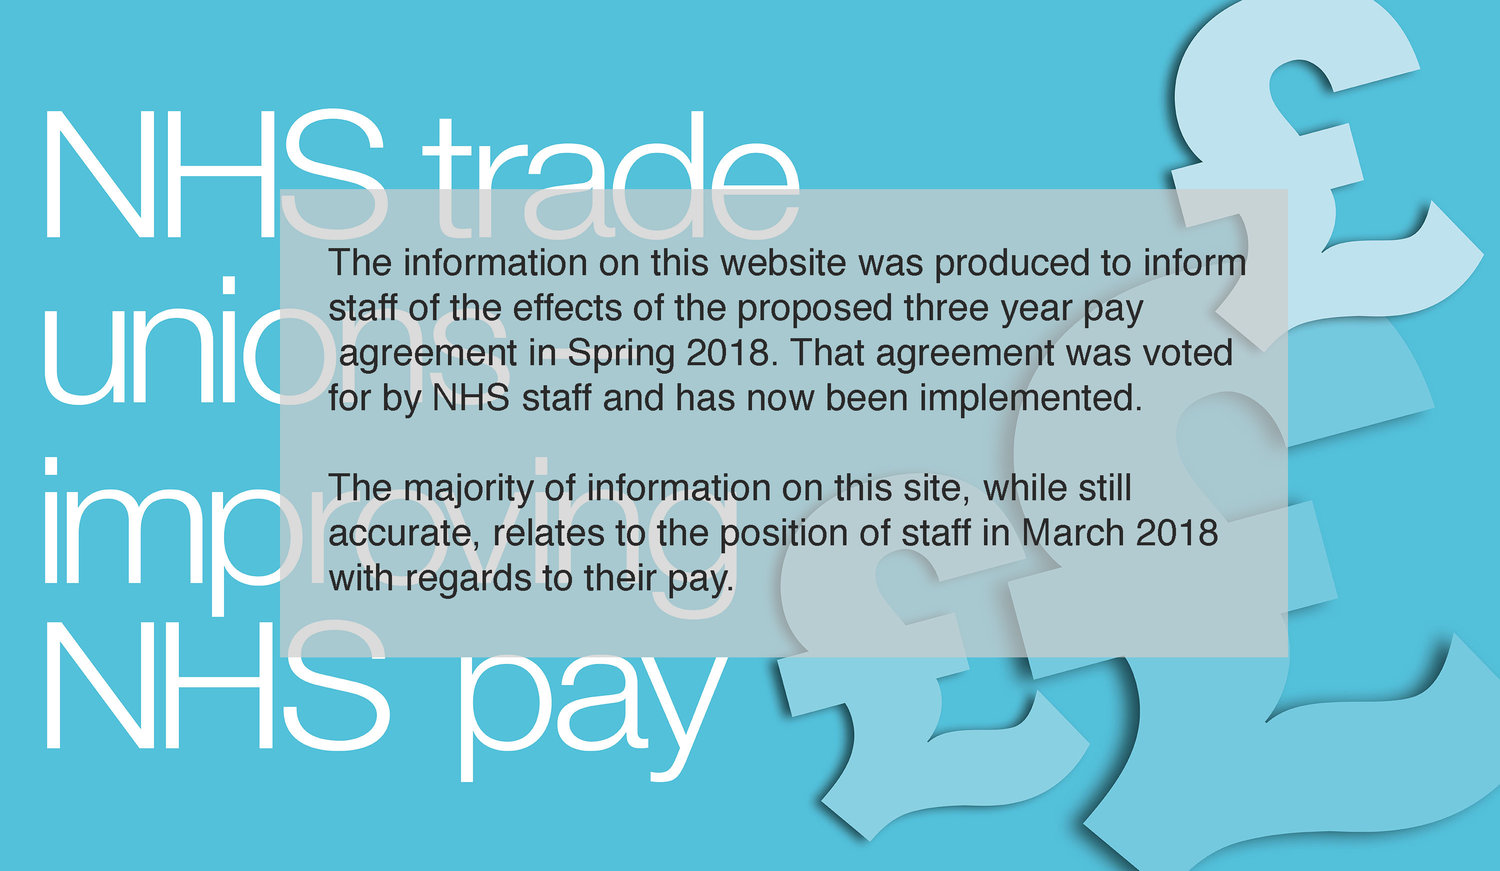 Band 3 — NHS Pay